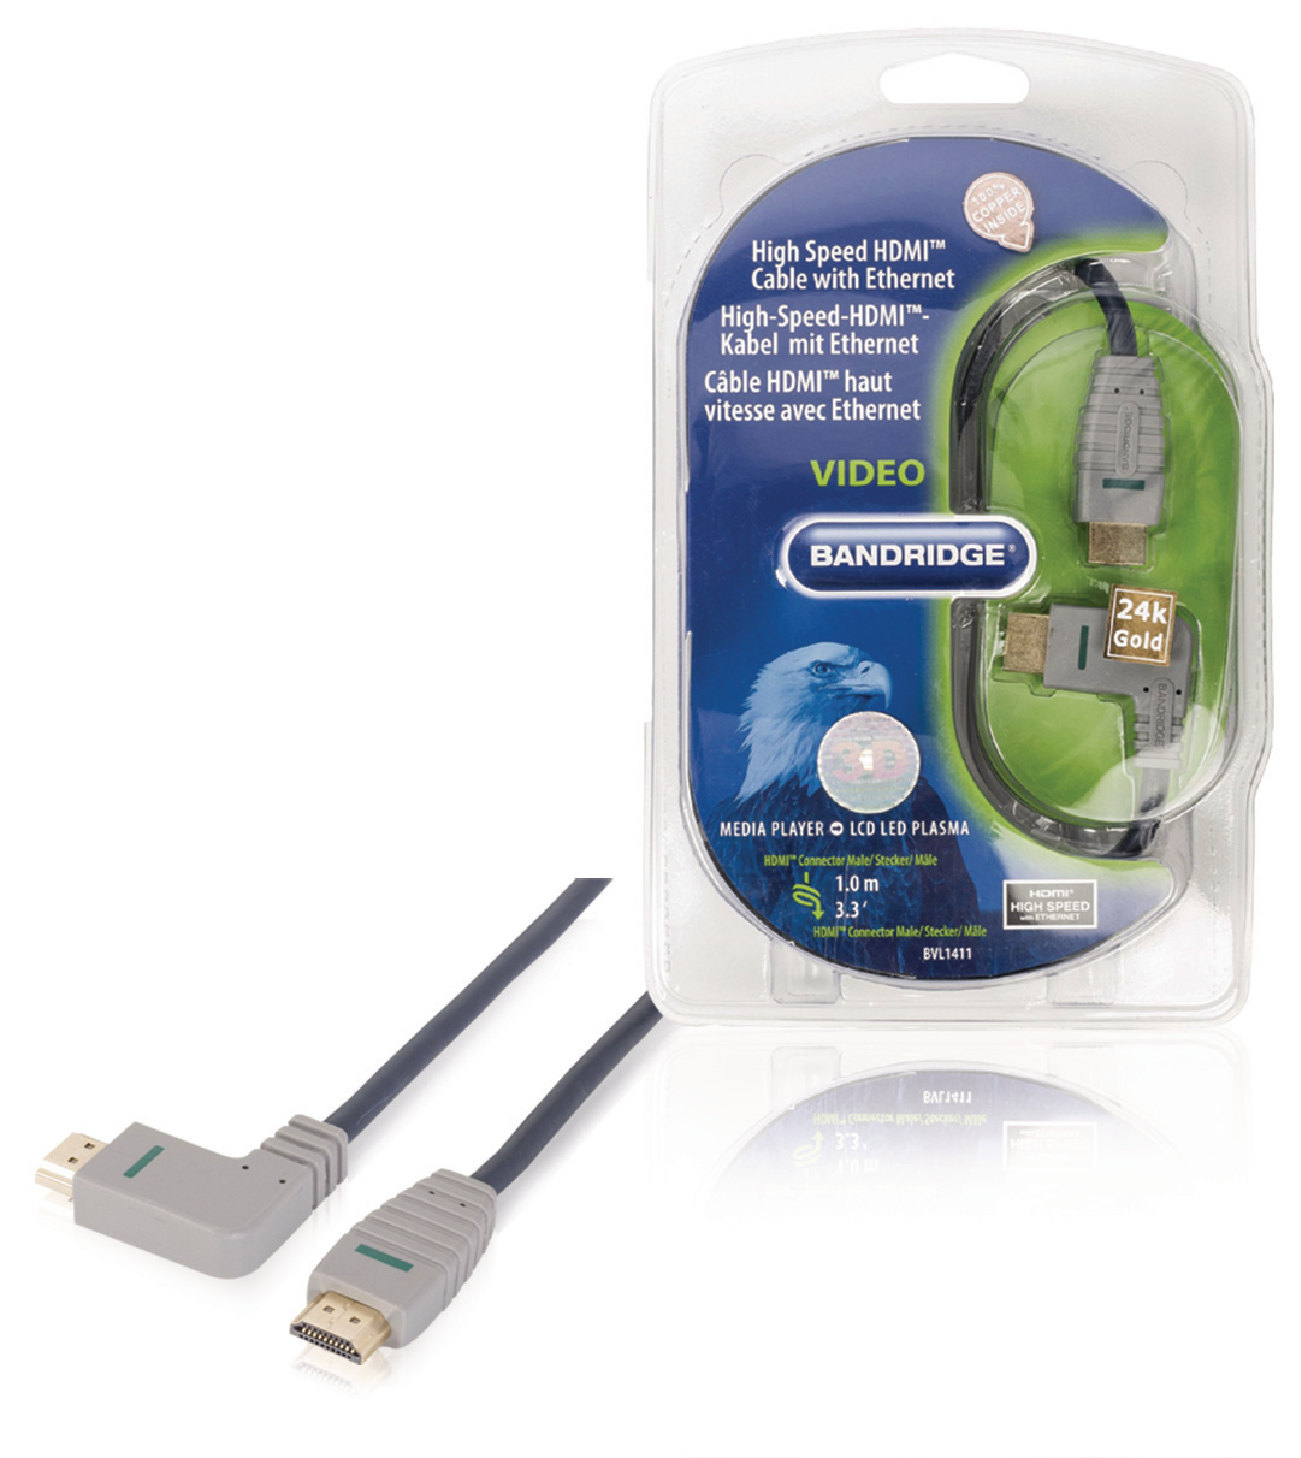 Bvl1411 Bandridge High Speed Hdmi Cable With Ethernet Angle Connector Angled